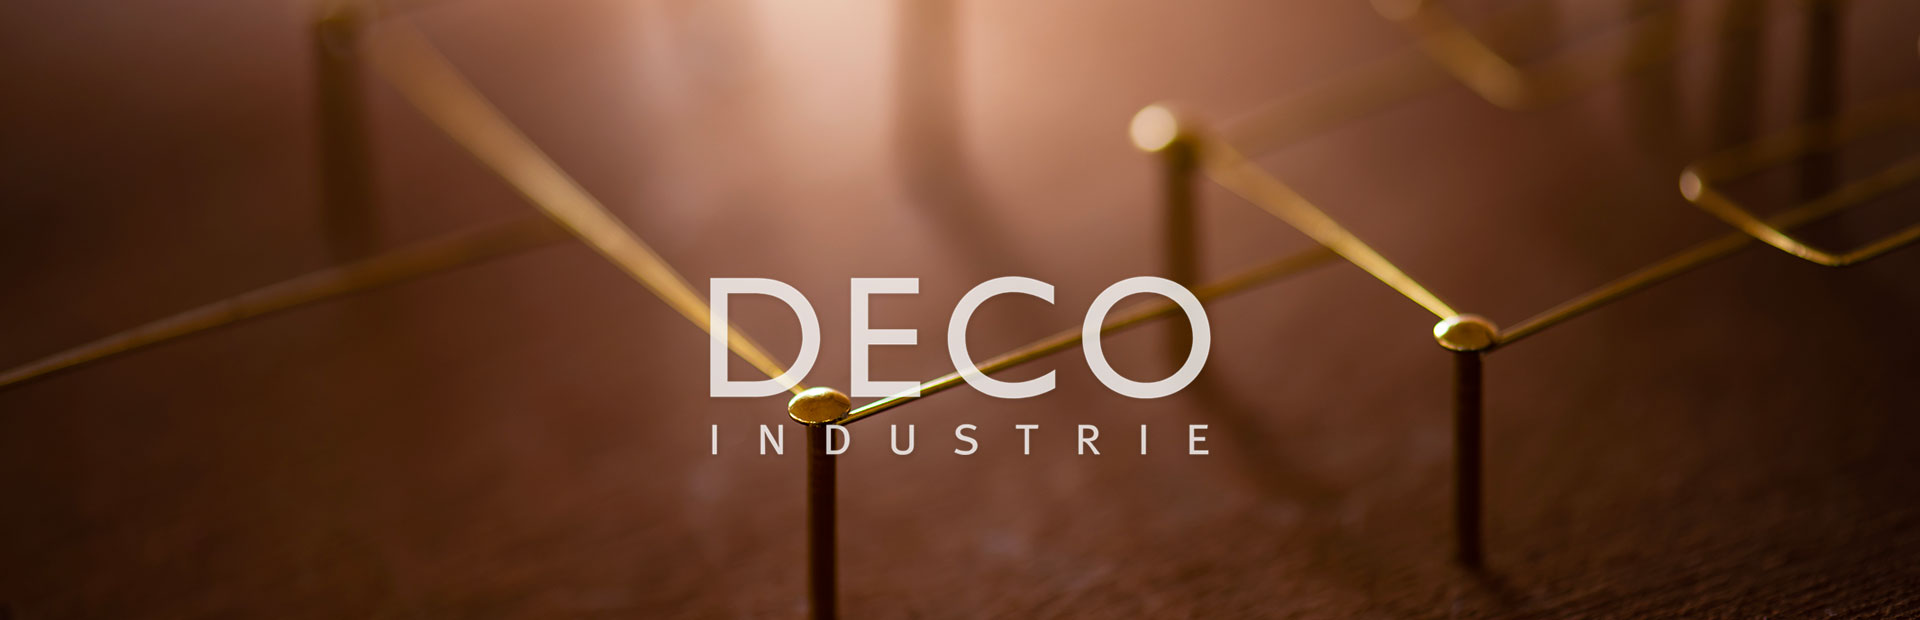 Deco Industrie SCPA